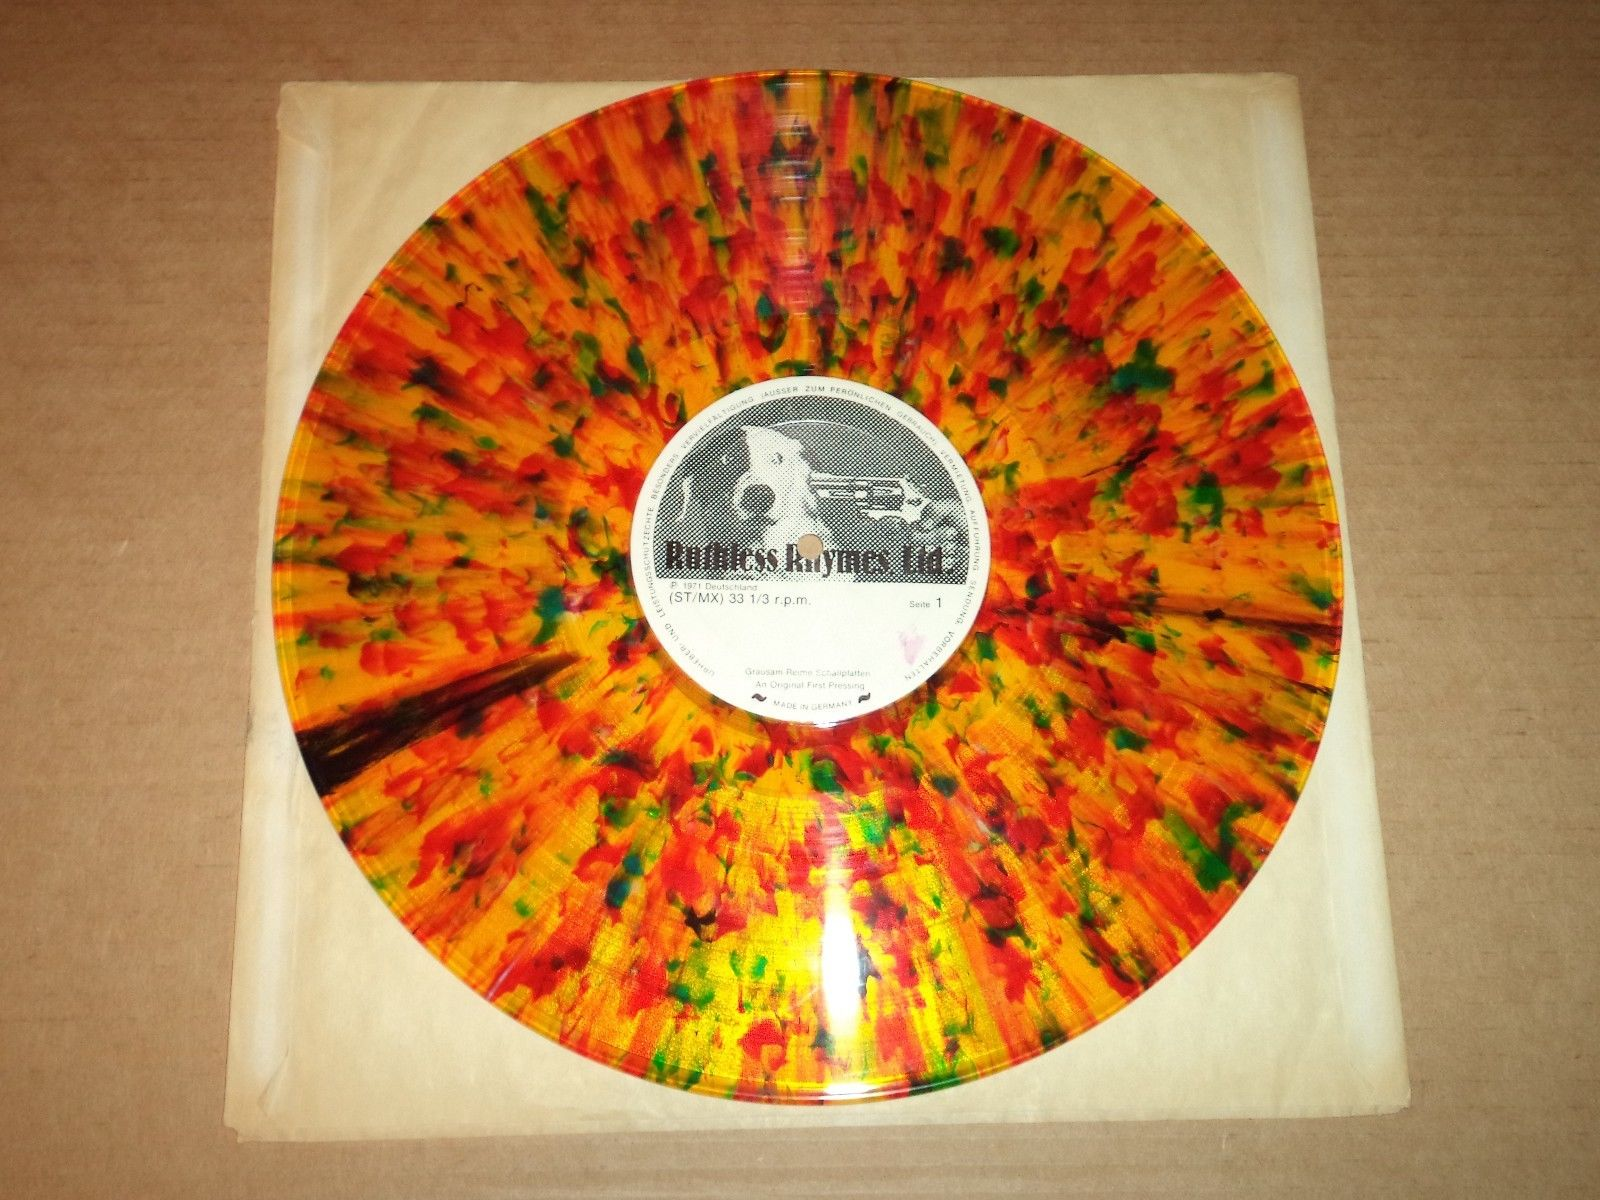 LED ZEPPELIN MUDSLIDE LP MULTICOLORED VINYL RUTHLESS RHYMES TMOQ TAKRL MCV RARE